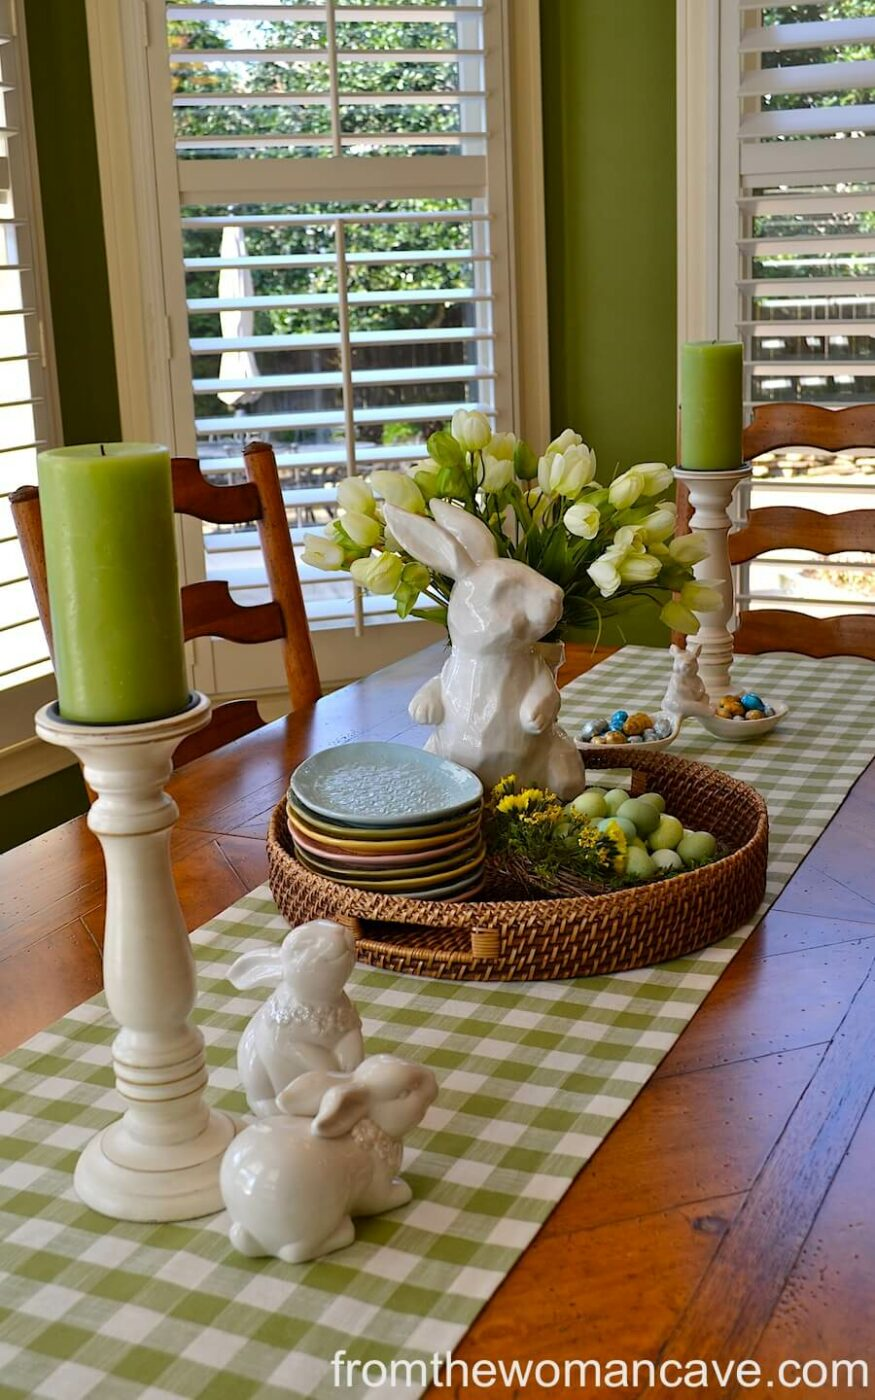 Green Gingham Bunny Runner Display